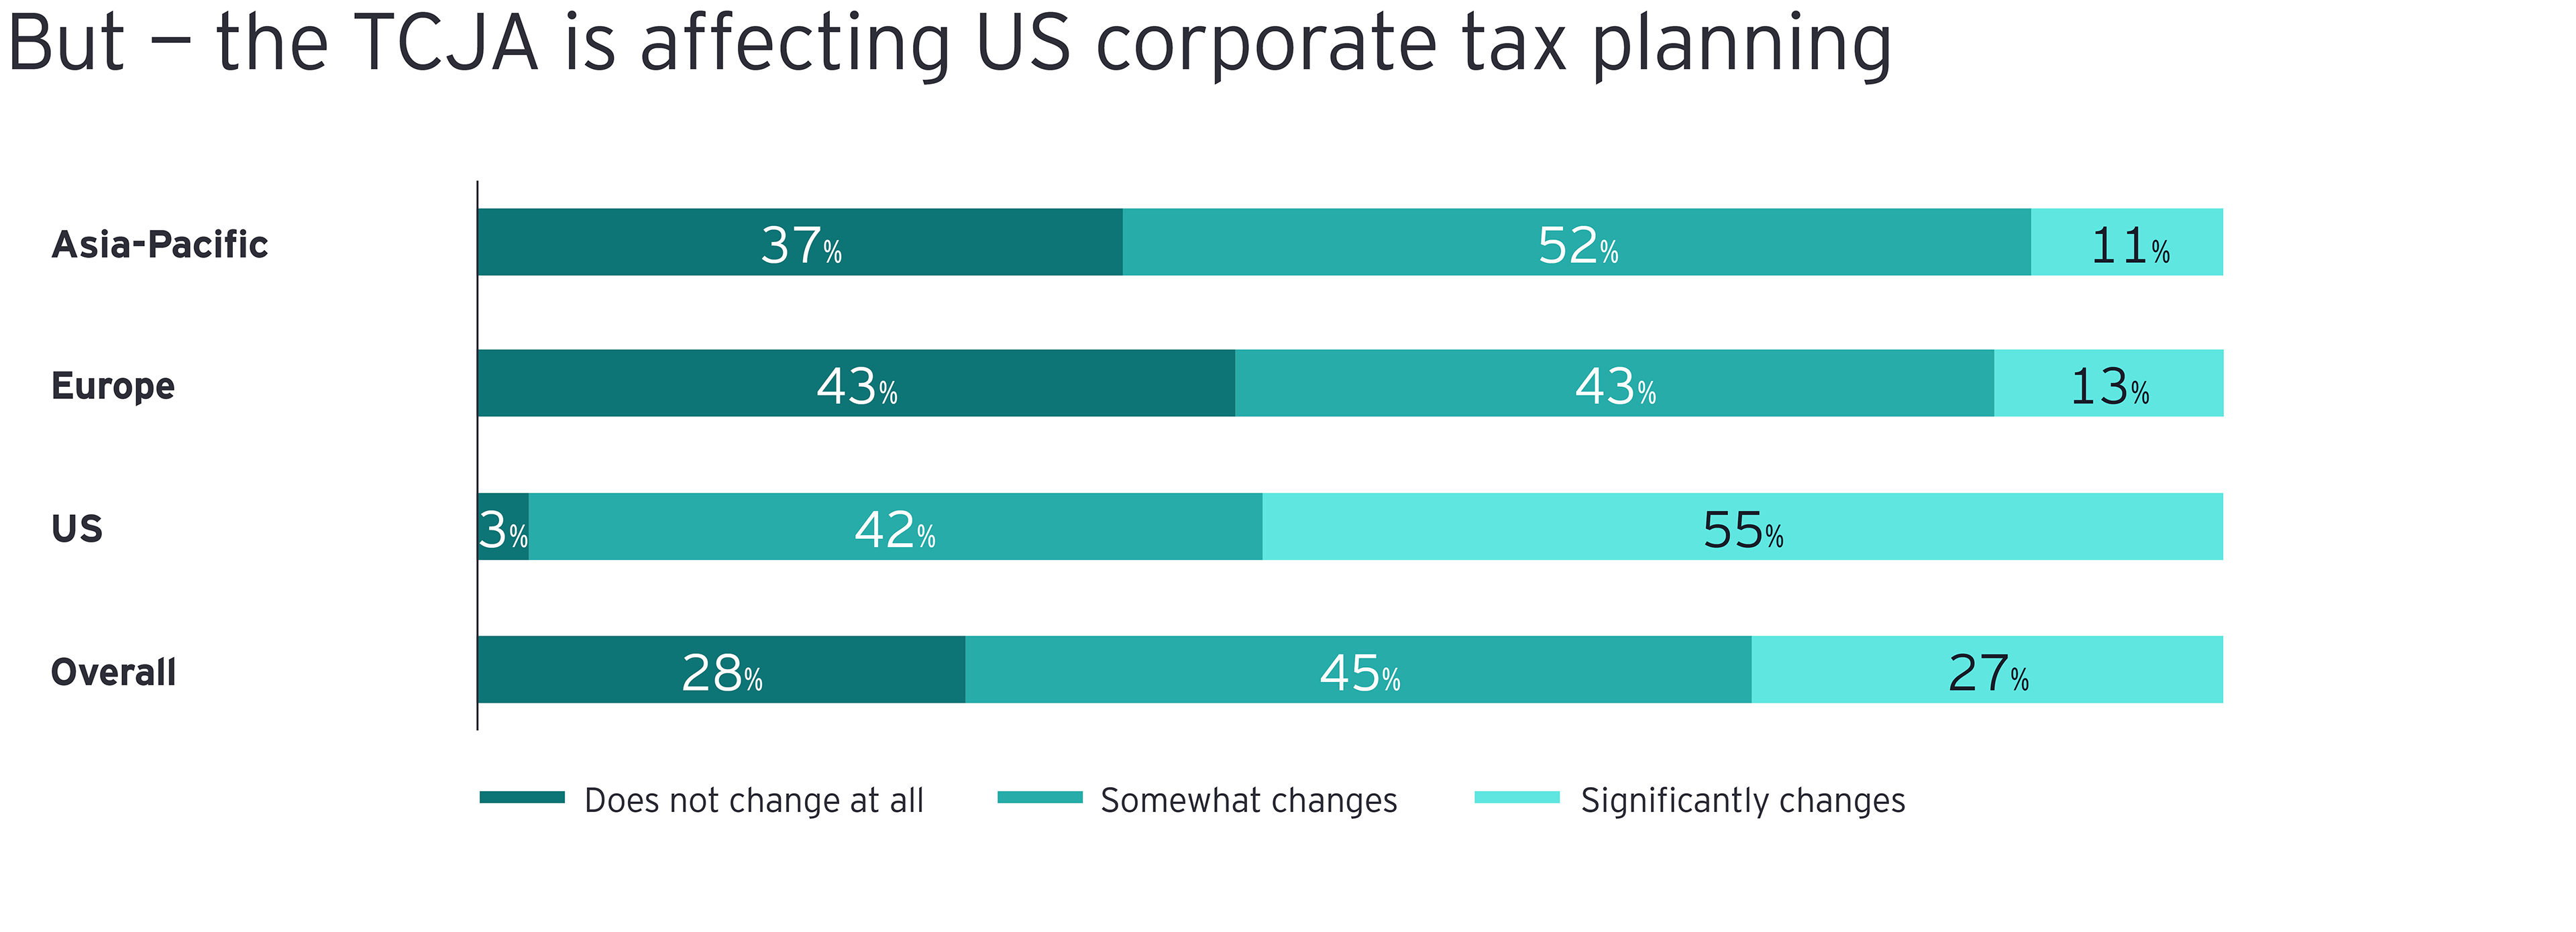 tcja is affecting US corporate tax planning